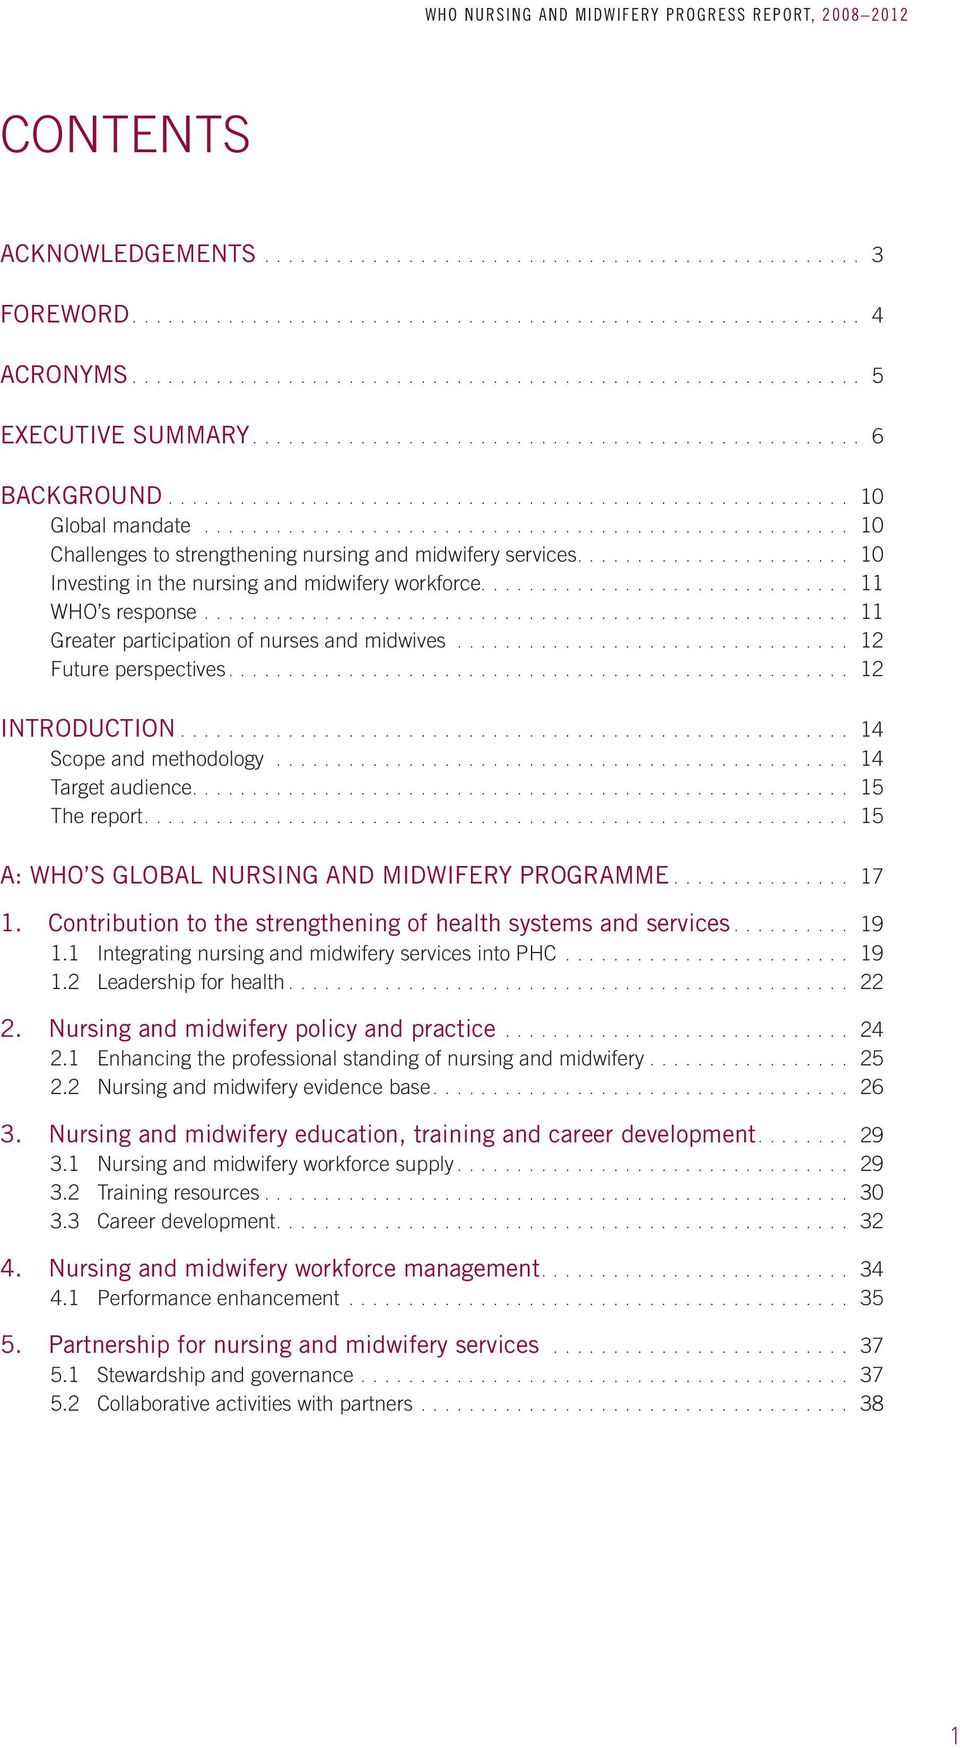 ... 12 Future perspectives.... 12. INTRODUCTION.... 14 Scope and methodology... 14 Target audience.... 15 The report.... 15 A: WHO S GLOBAL NURSING AND MIDWIFERY PROGRAMME.... 17 1.